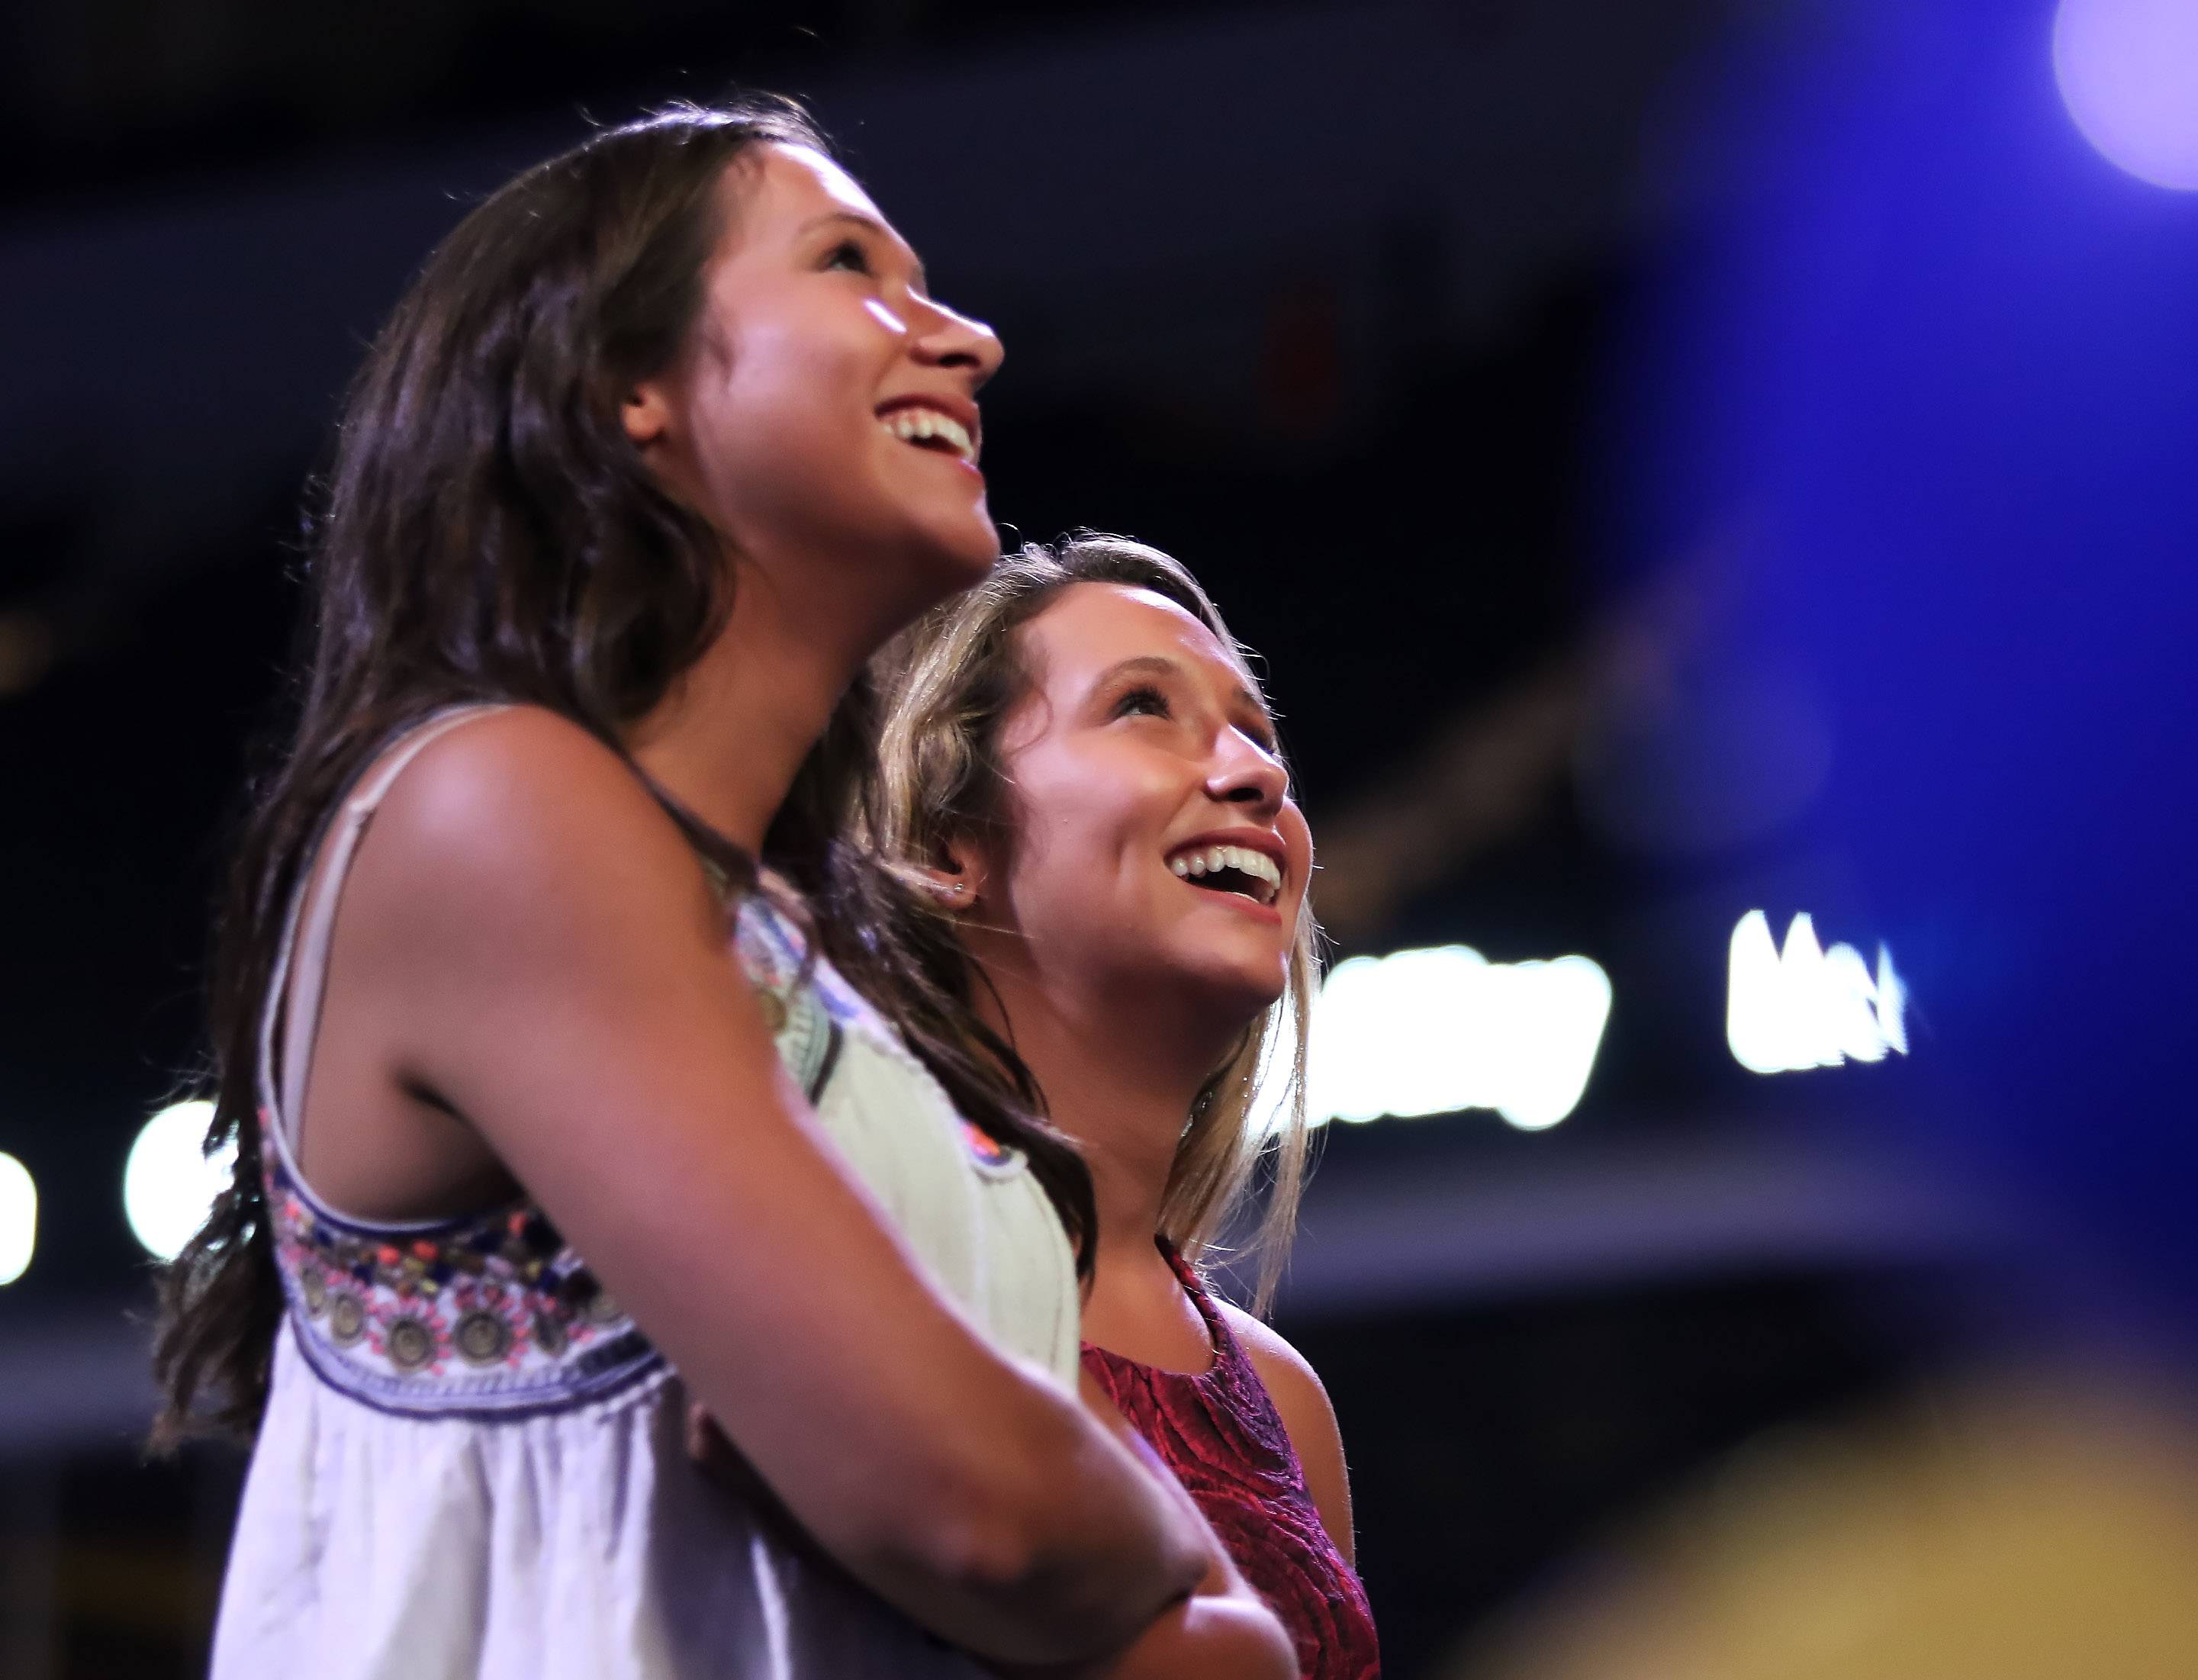 Libertyville High School athletes Claire and Kelly Keefe watch a video after winning the Overcoming Obstacles award during the Daily Herald Preps Sports Excellence Awards Monday night at the Sears Centre Arena in Hoffman Estates. About 1,000 people attended the banquet recognizing the best athletes and coaches in the area for the past school year.